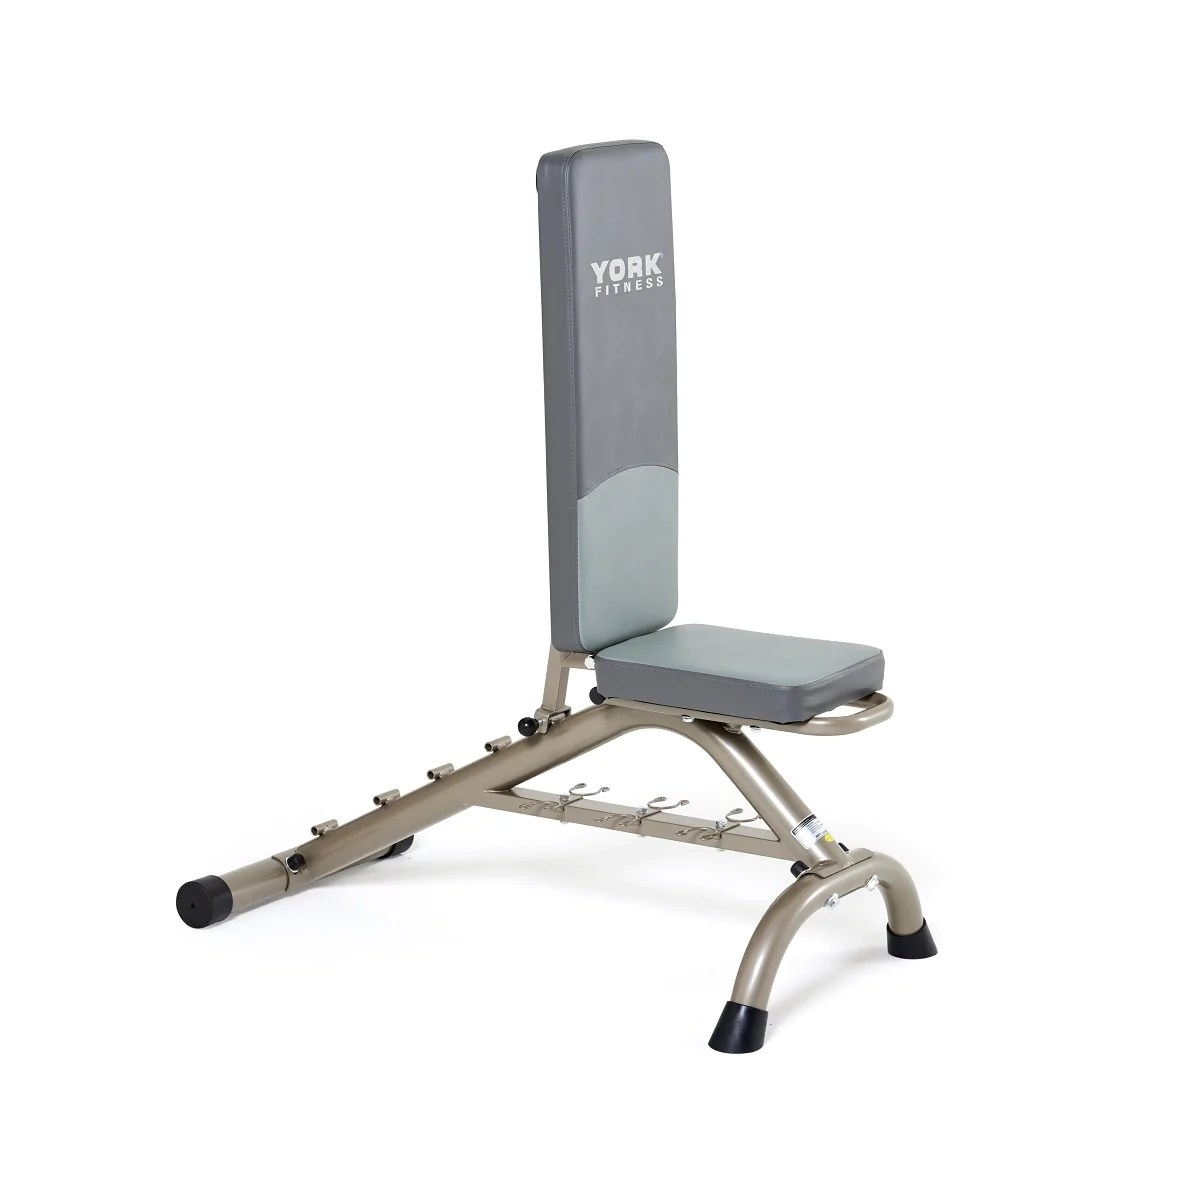 gym bench press chair toddler wood york fitness multi purpose dumbbell low